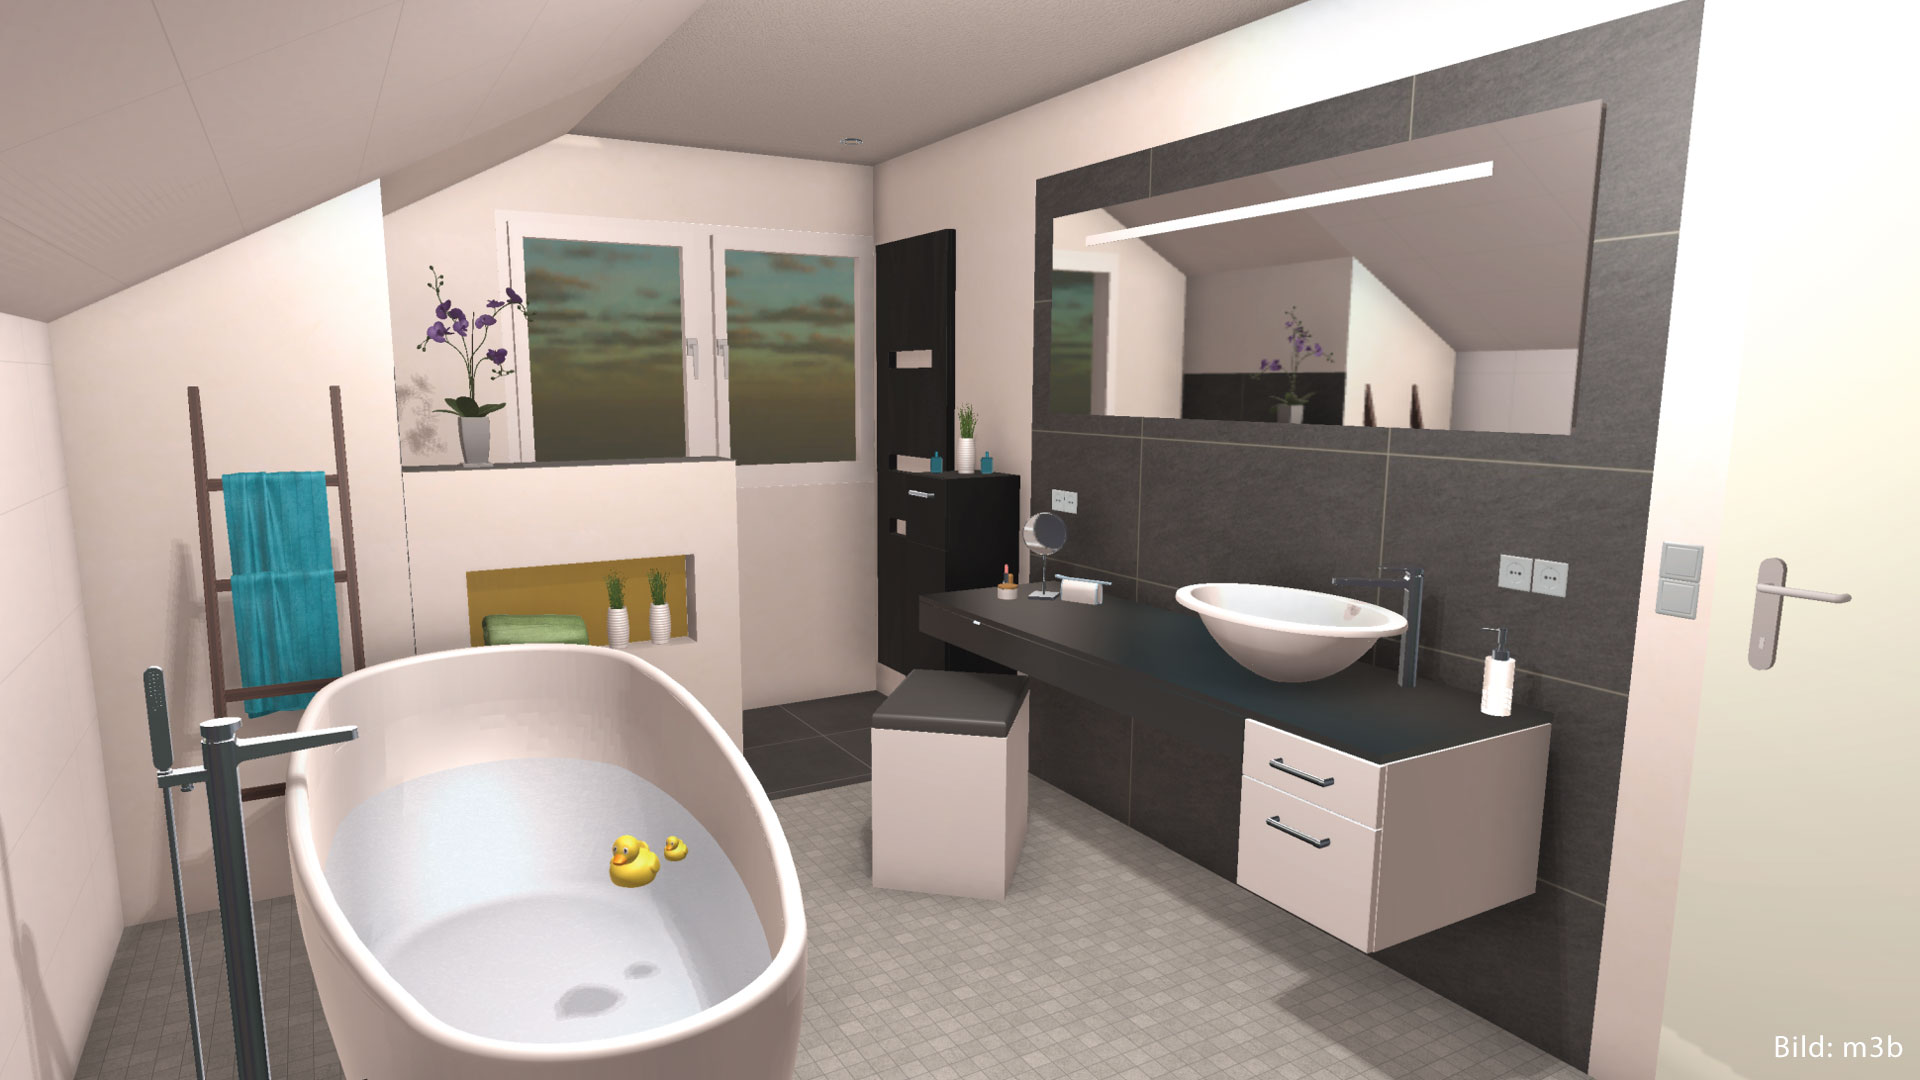 bild_app_splash_small.jpg